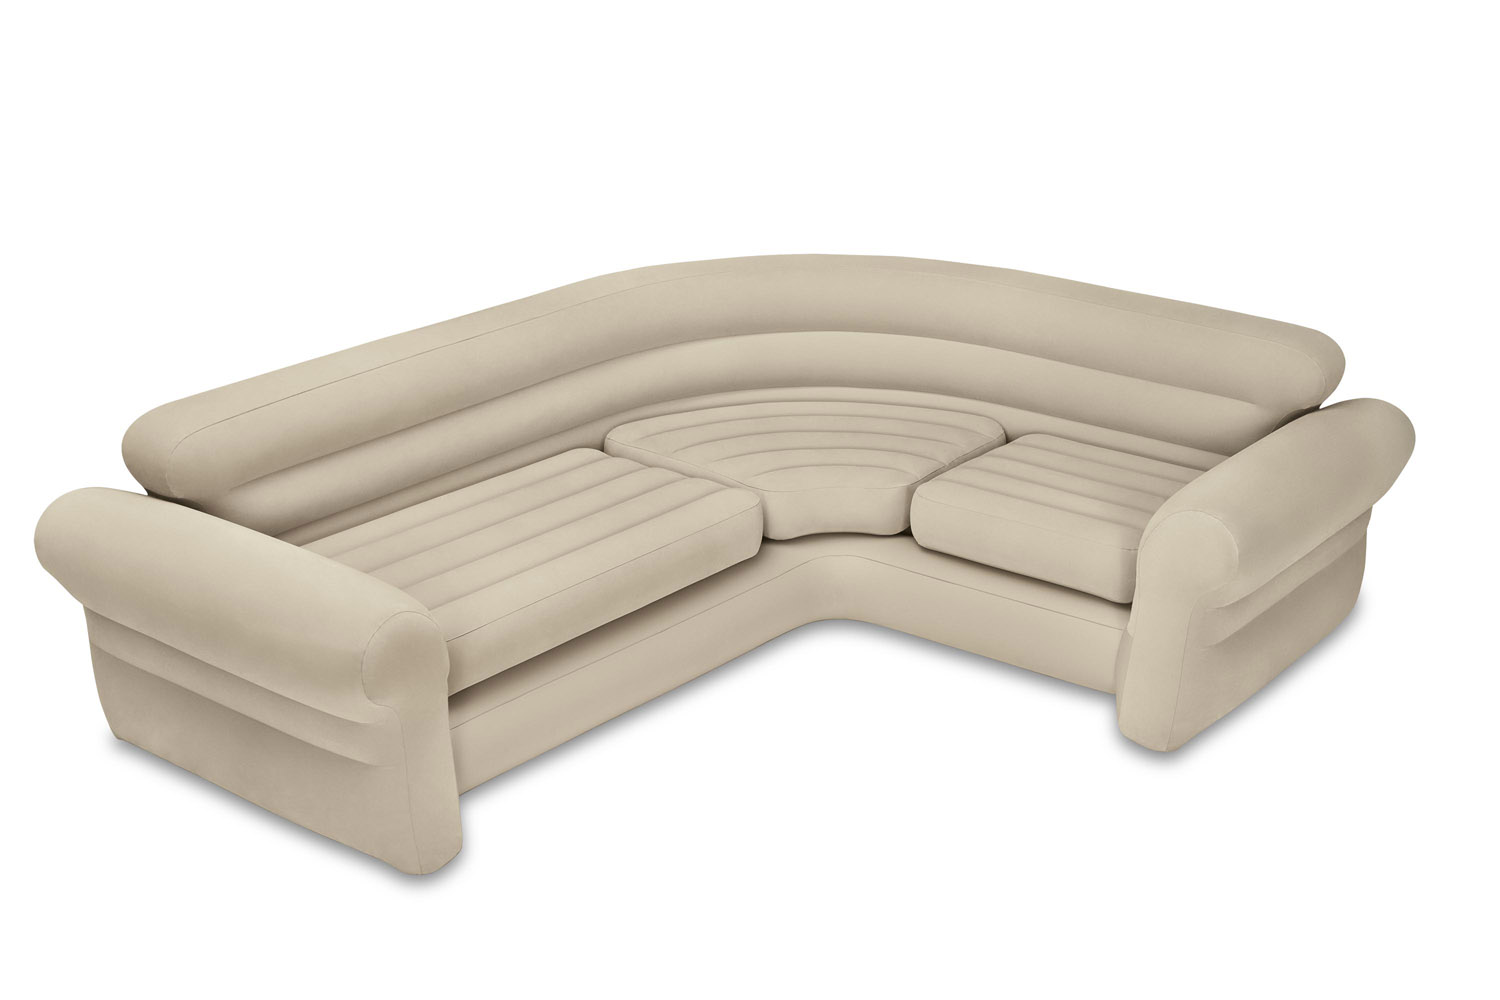 Intex Inflatable Corner Living Room Neutral Sectional Sofa | 68575EP by Intex